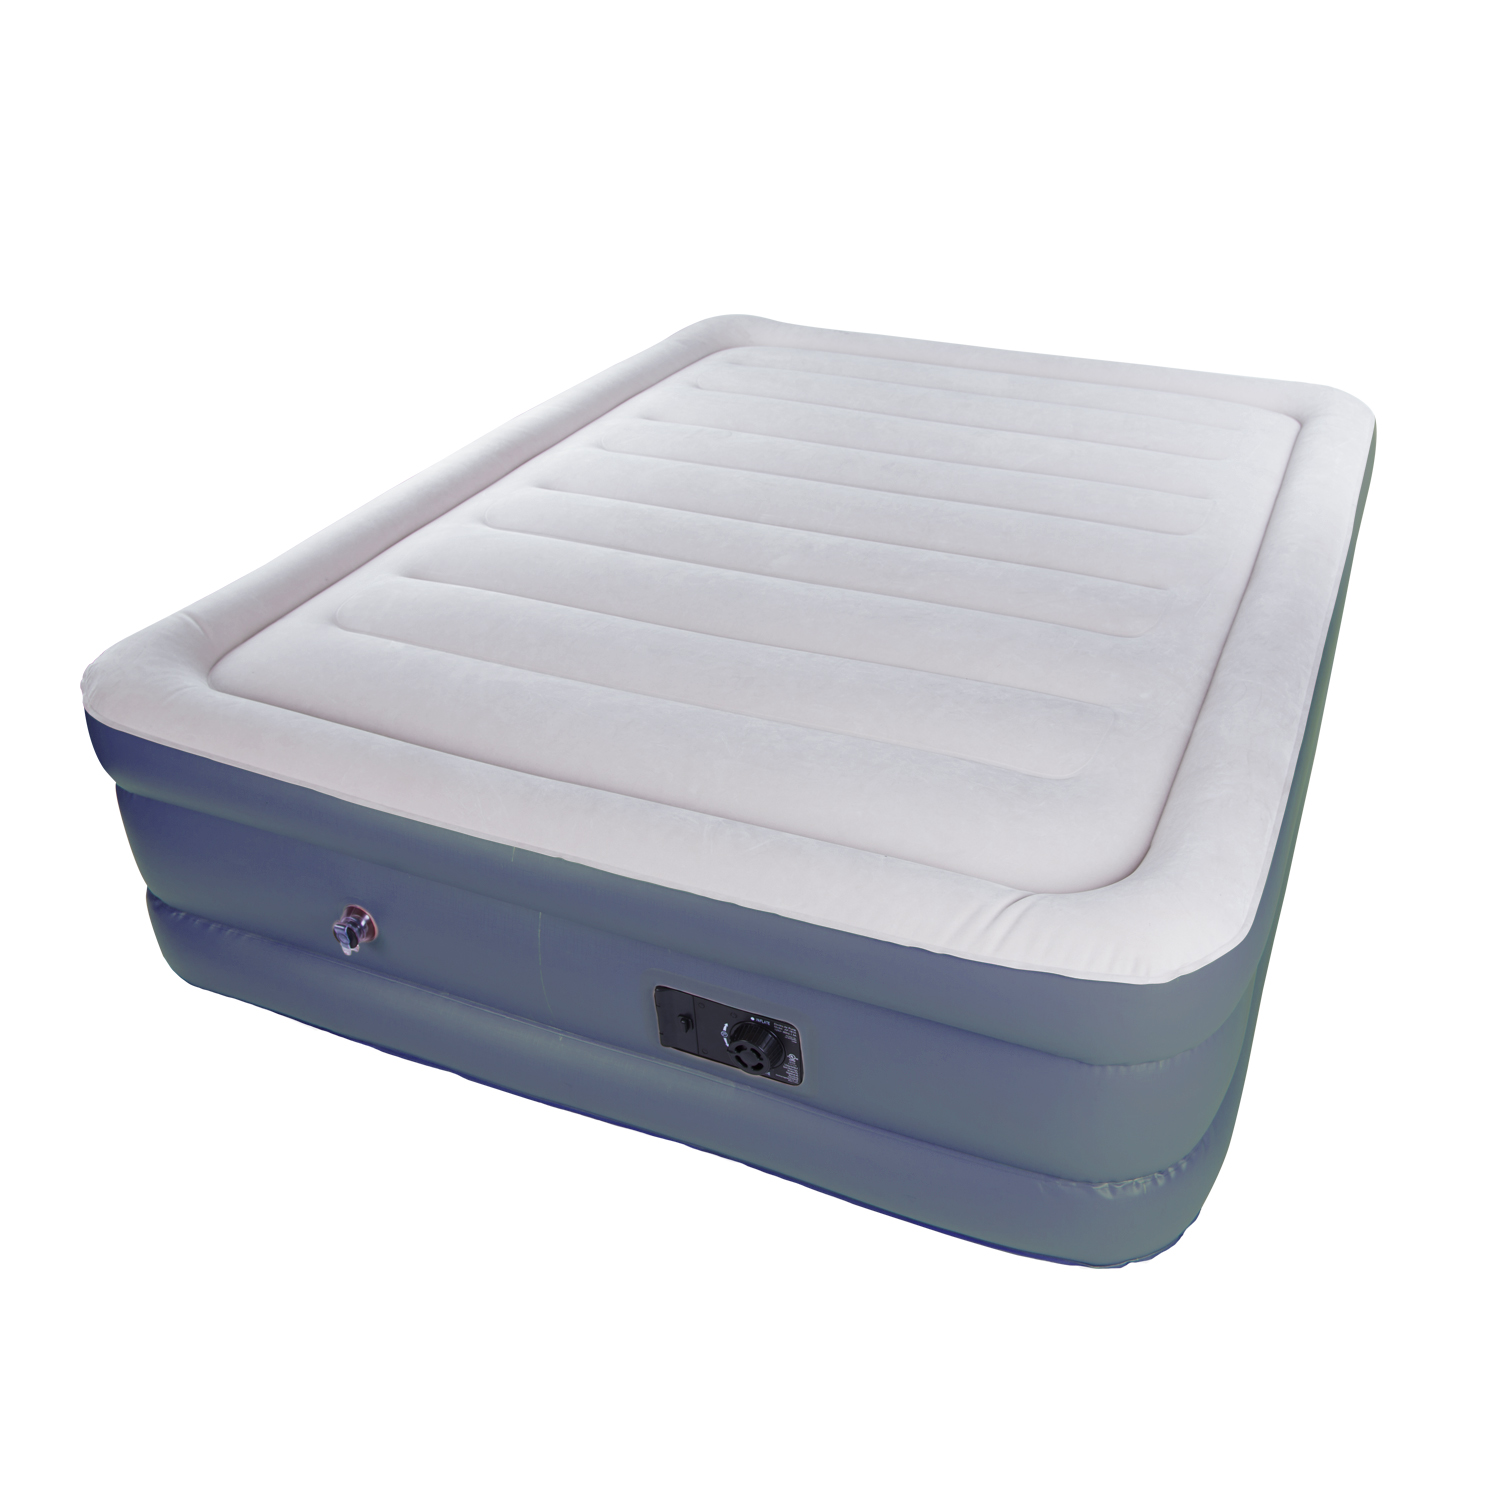 Baby Mattress Kmart Stansport Double High Deluxe Air Bed Built In Pump